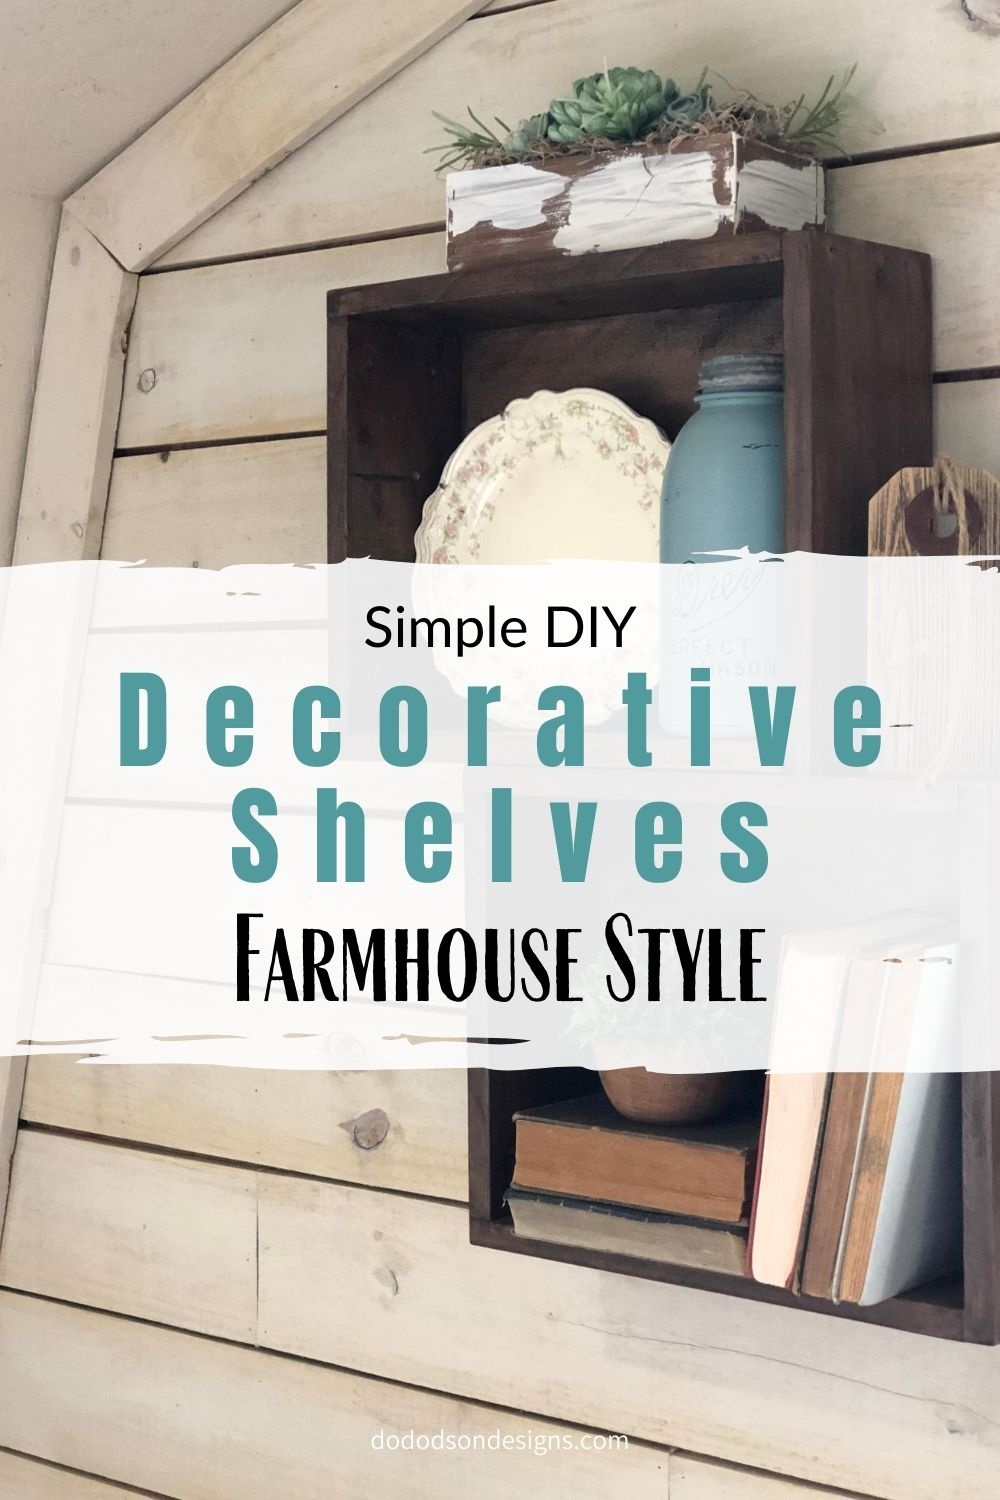 How To Make Simple Decorative Shelves With Wooden Crates